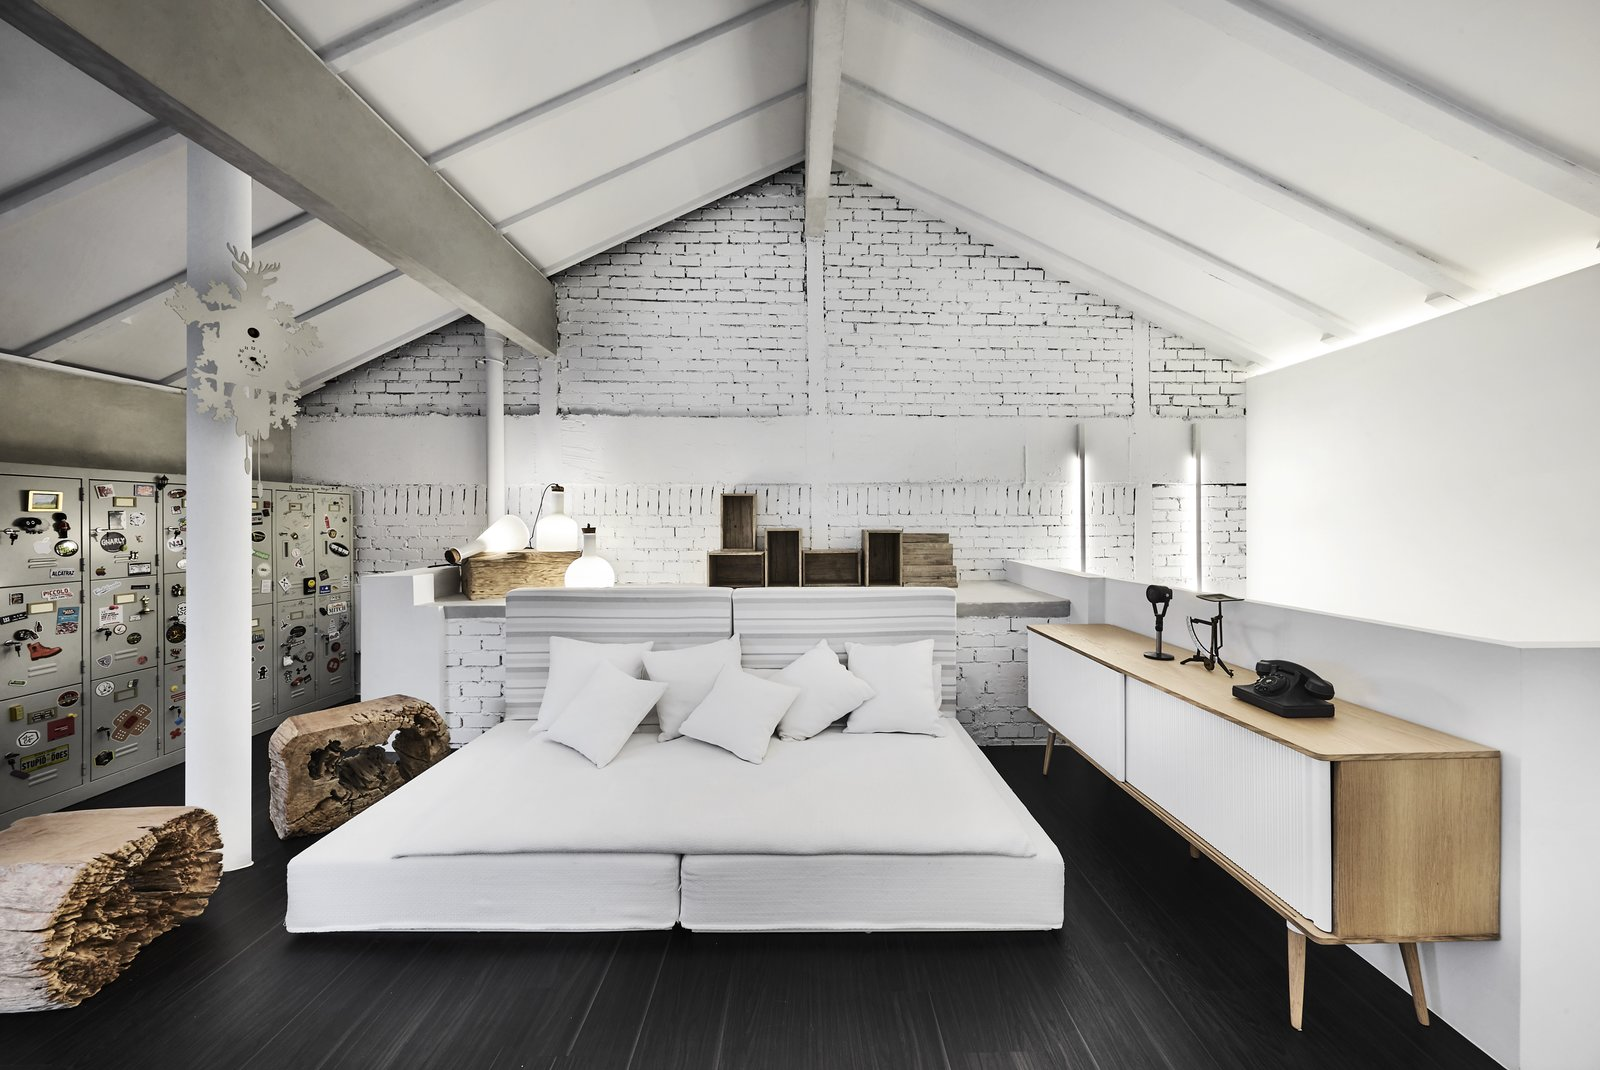 The insertion of an attic makes the most of the apartment's tall ceilings as well as provides ample space for the family.